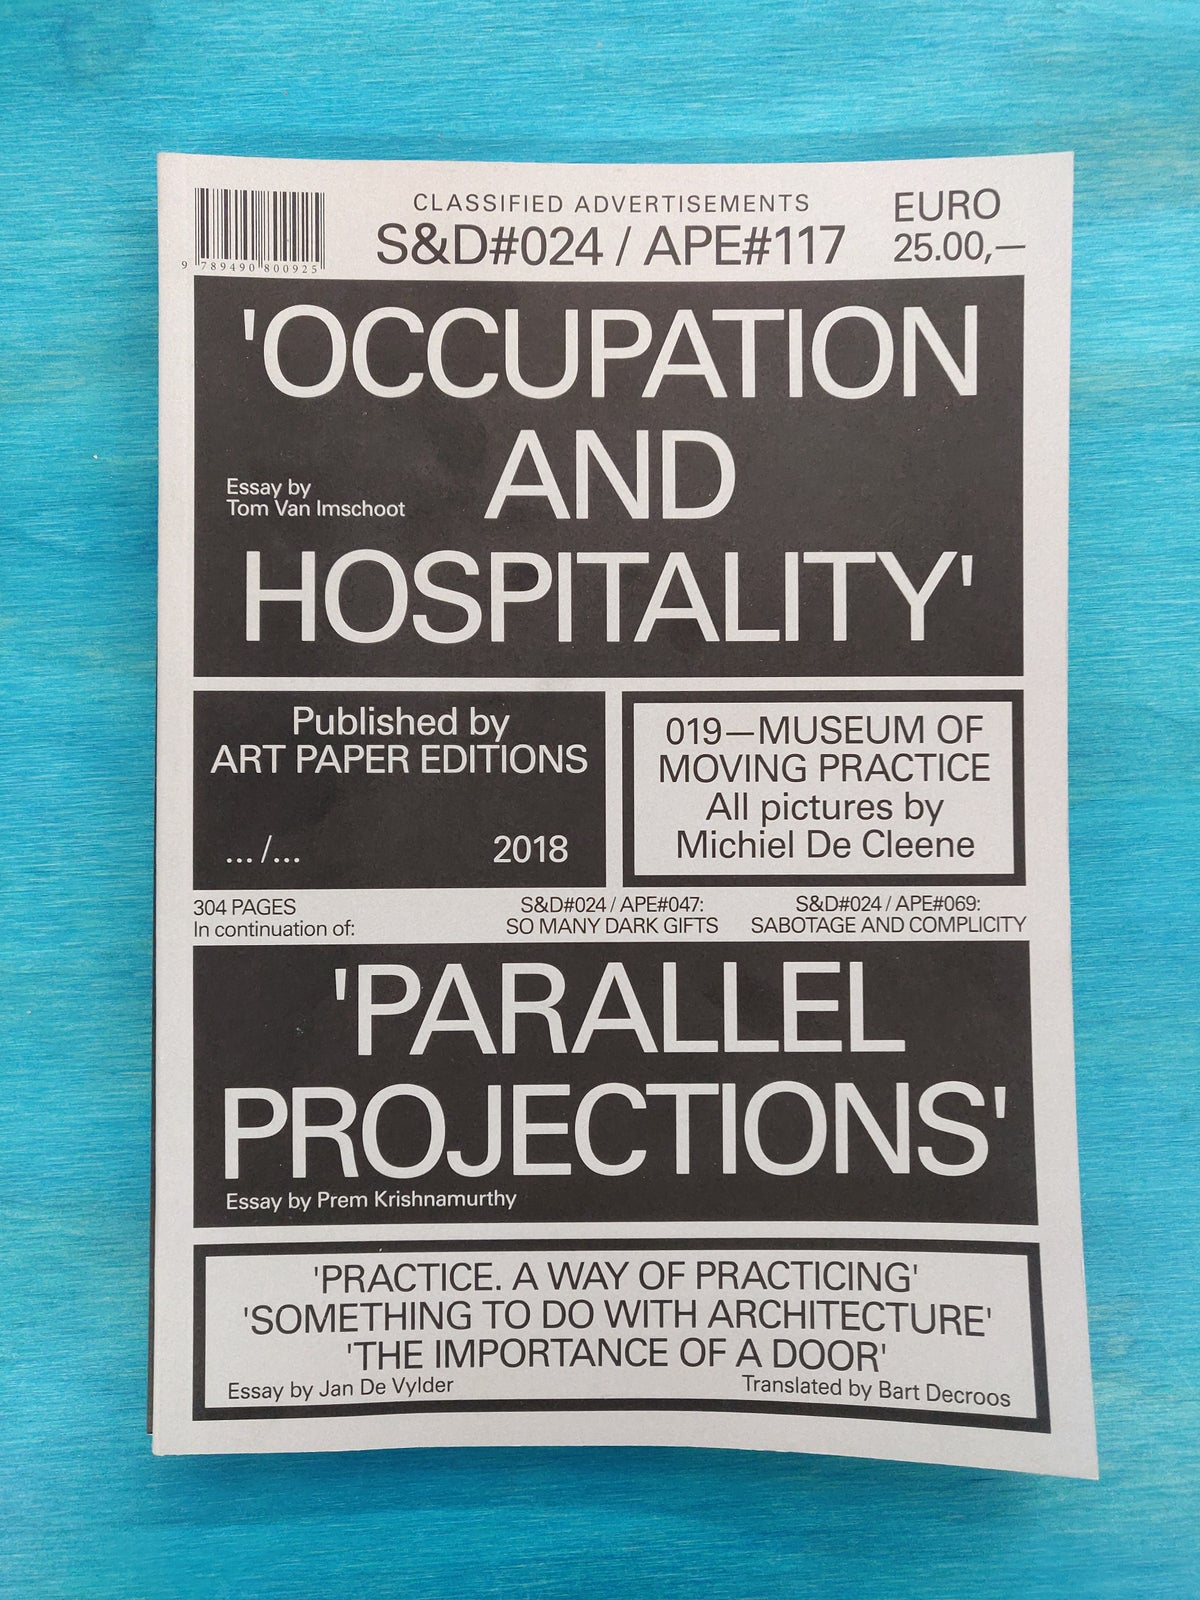 Occupation And Hospitality (S&D#024 / APE#117)